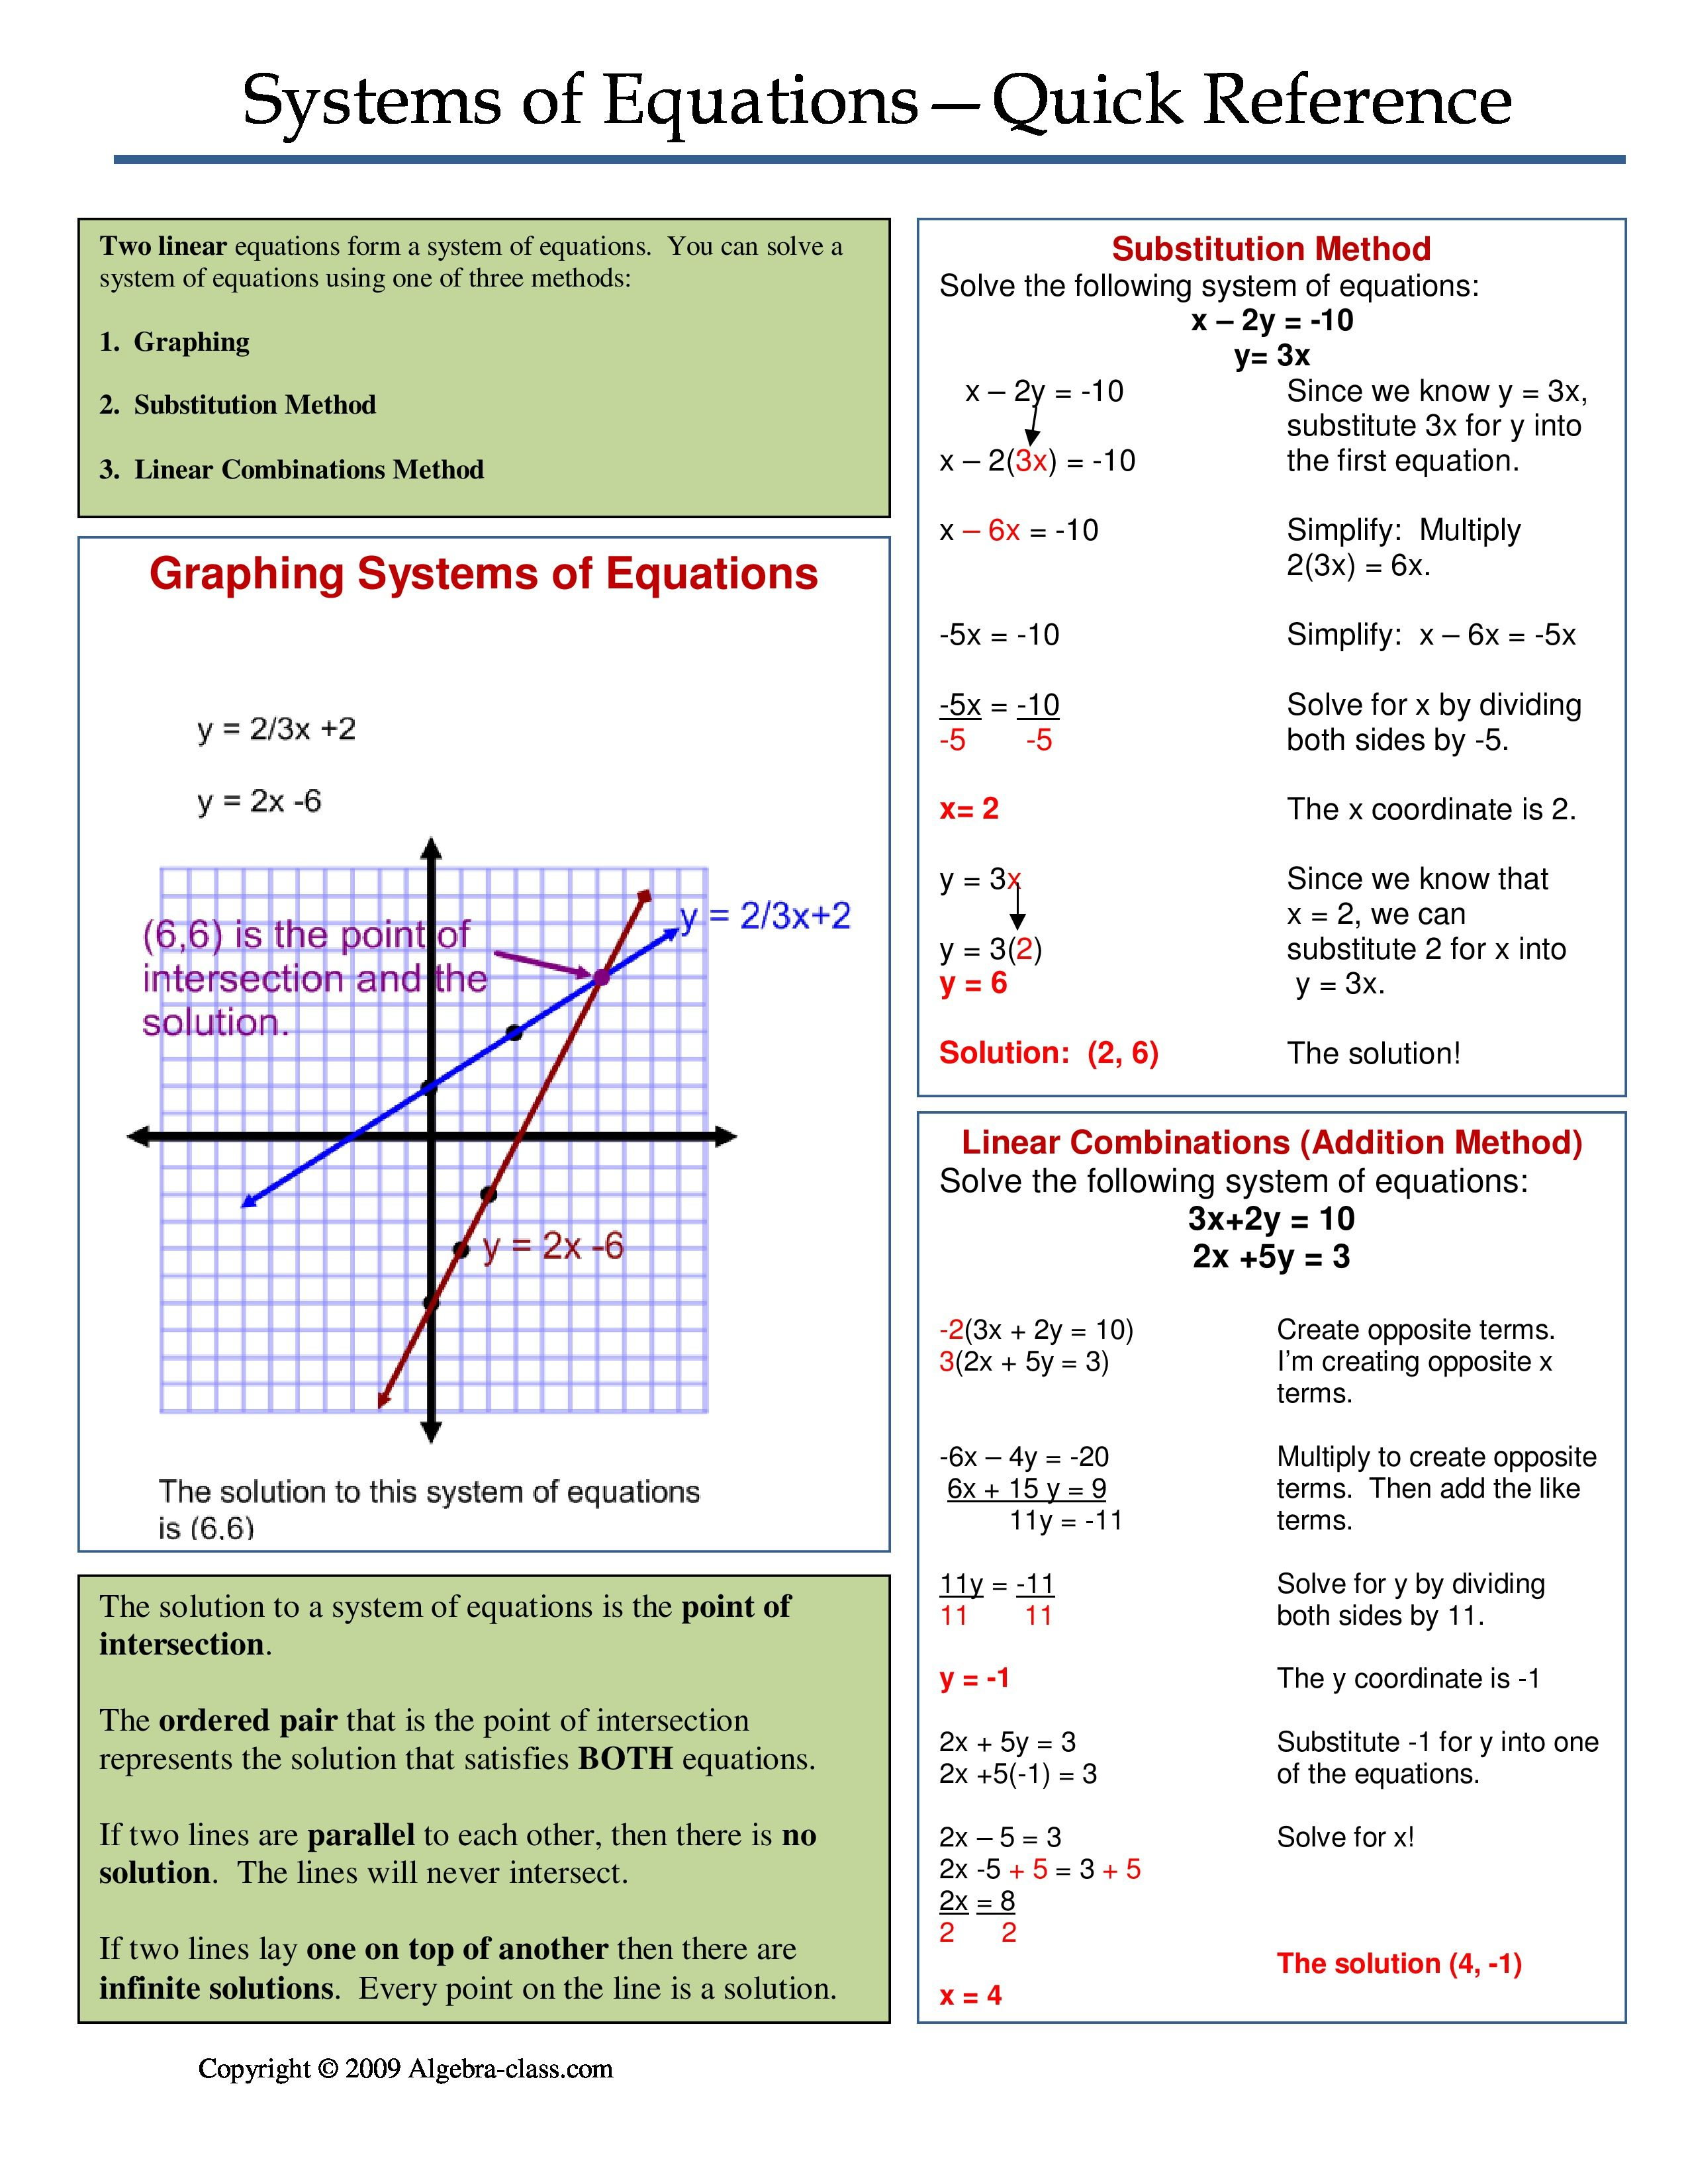 One page notes worksheet for Systems of Equations Unit. | Math 2 ...